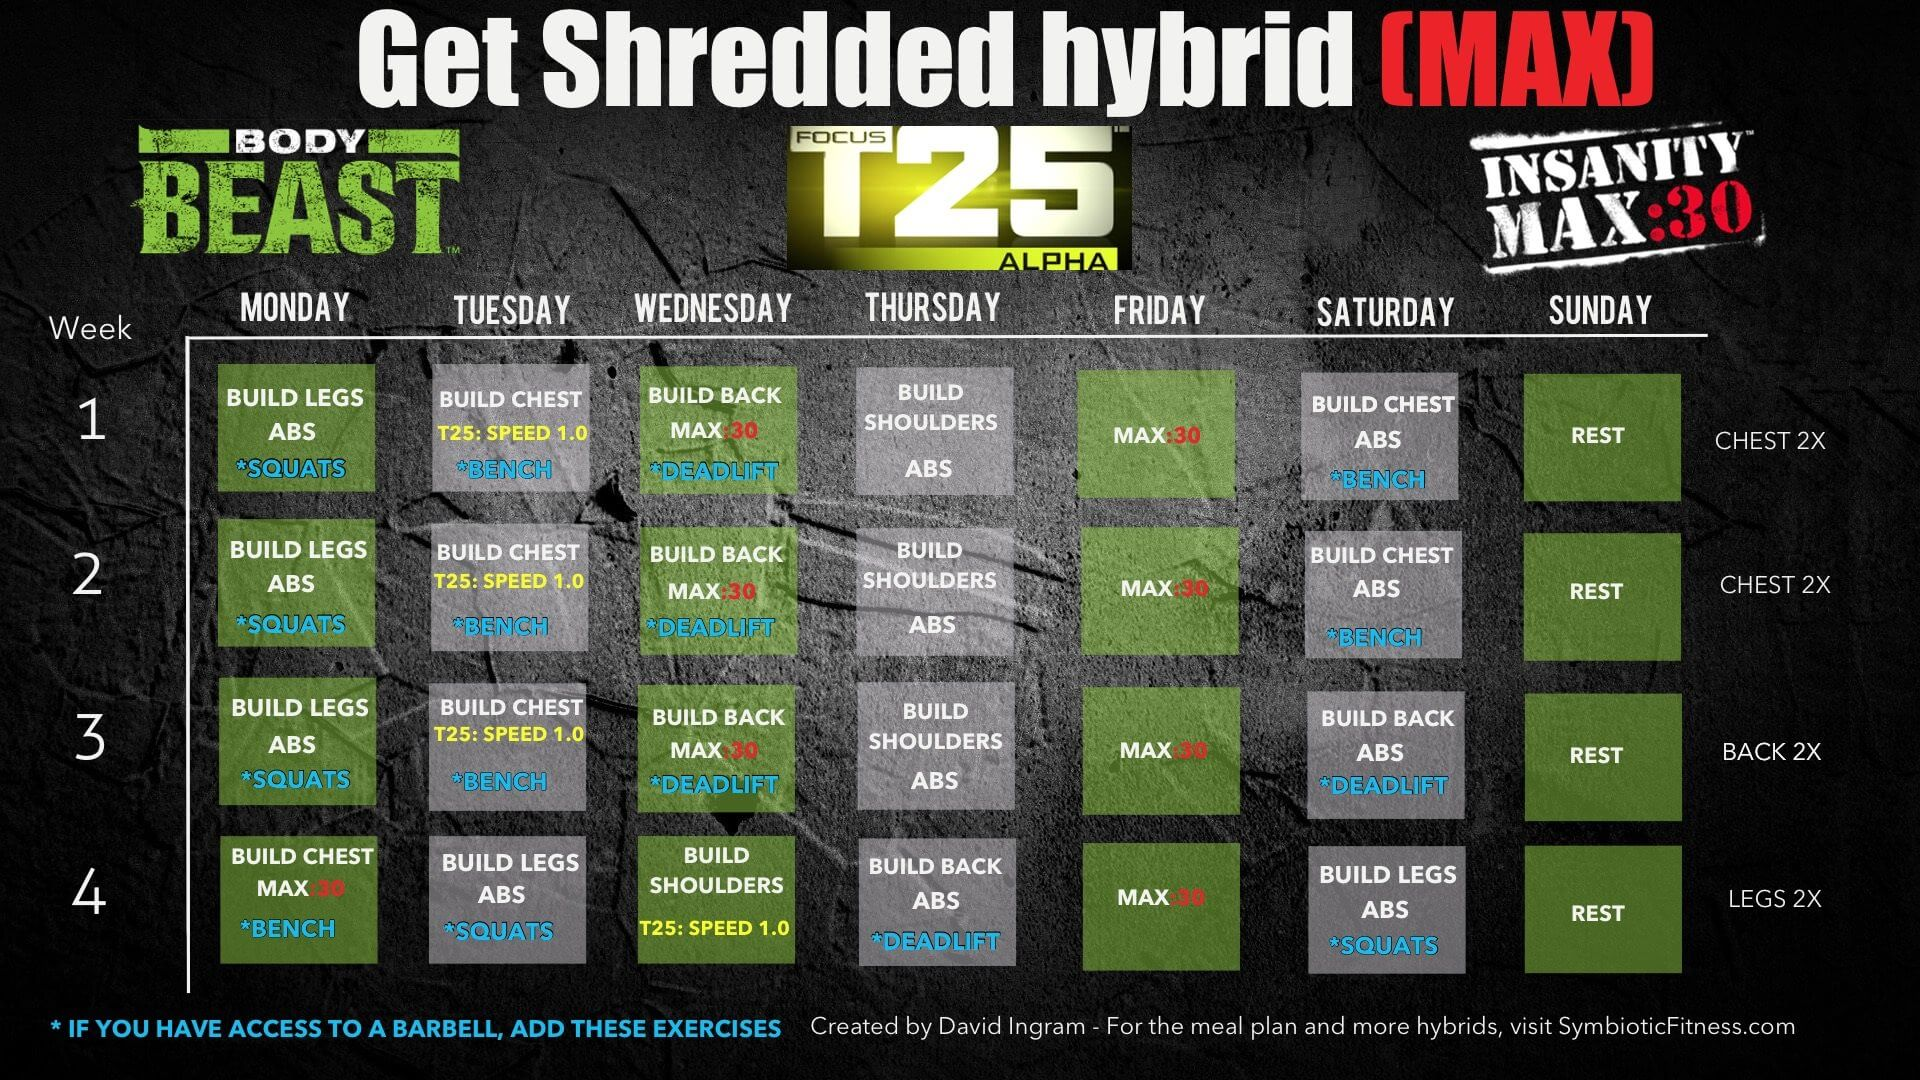 P90x3 Insanity Max 30 Hybrid Workout Schedule